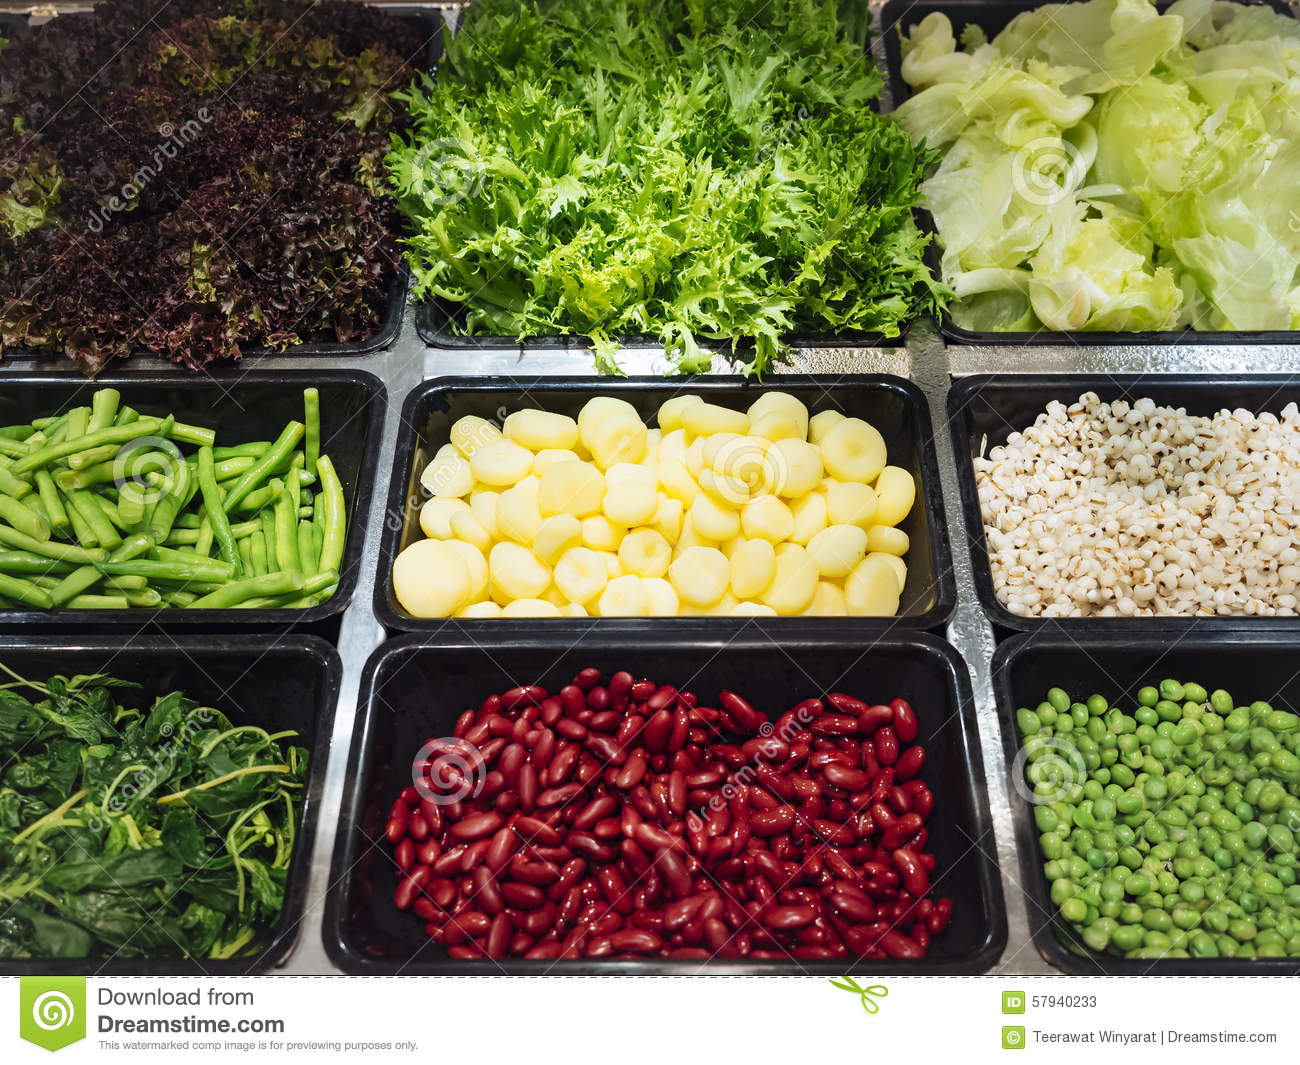 http://thumbs.dreamstime.com/z/salad-bar-fresh-vegetables-healthy-food-sliced-top-view-red-bean-pea-water-chestnut-millet-57940233.jpg